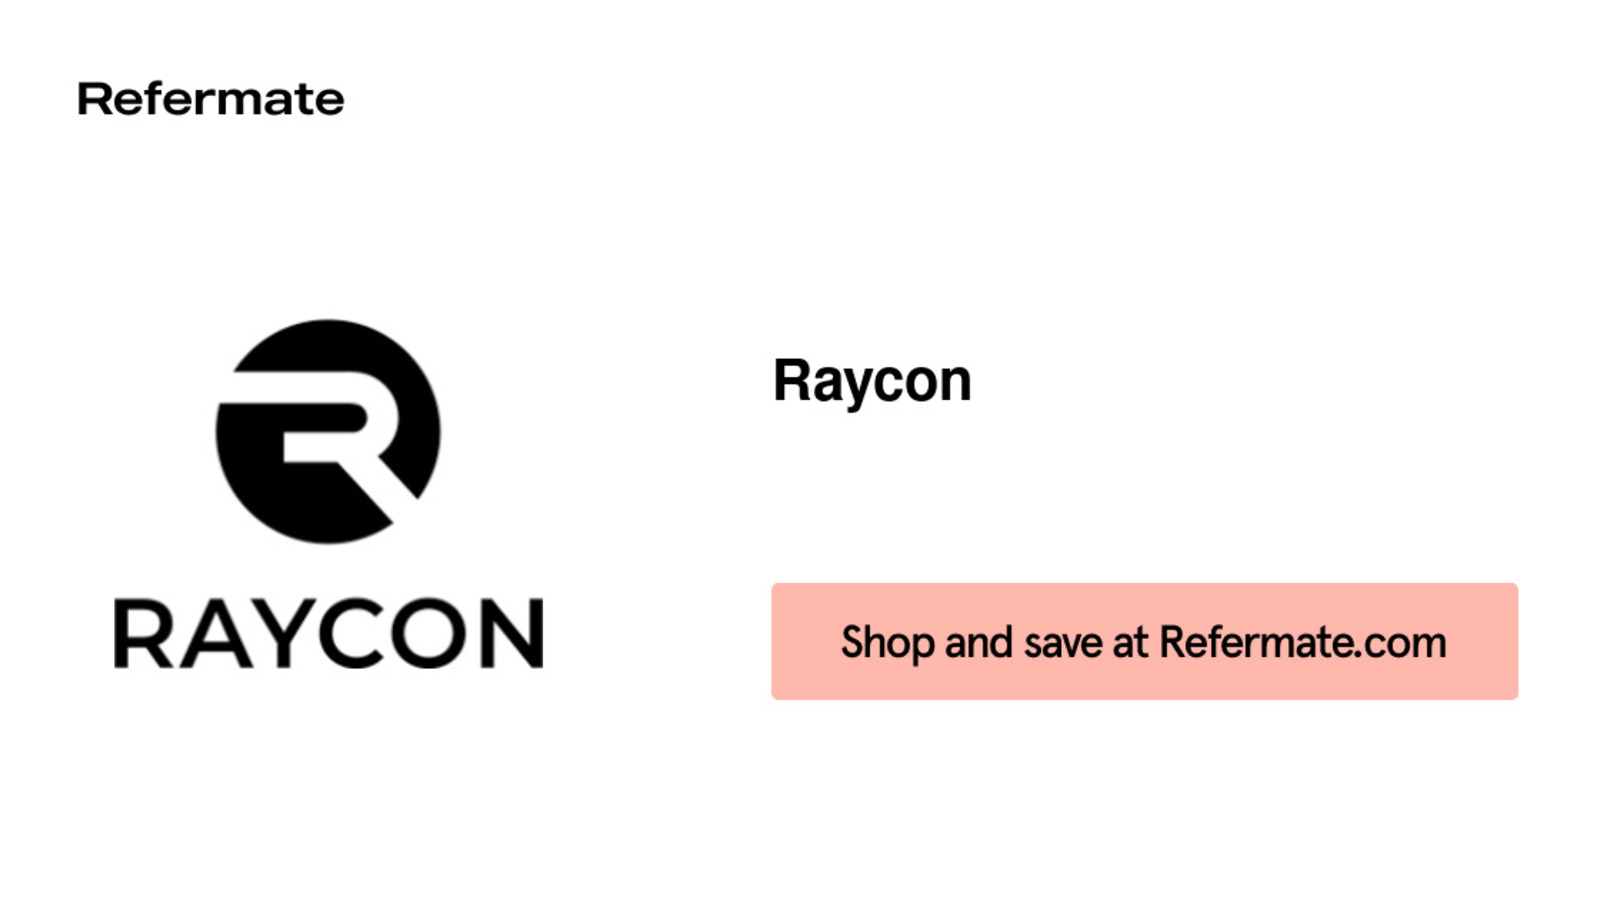 20 Off Raycon Discount Code November 2020 Refermate